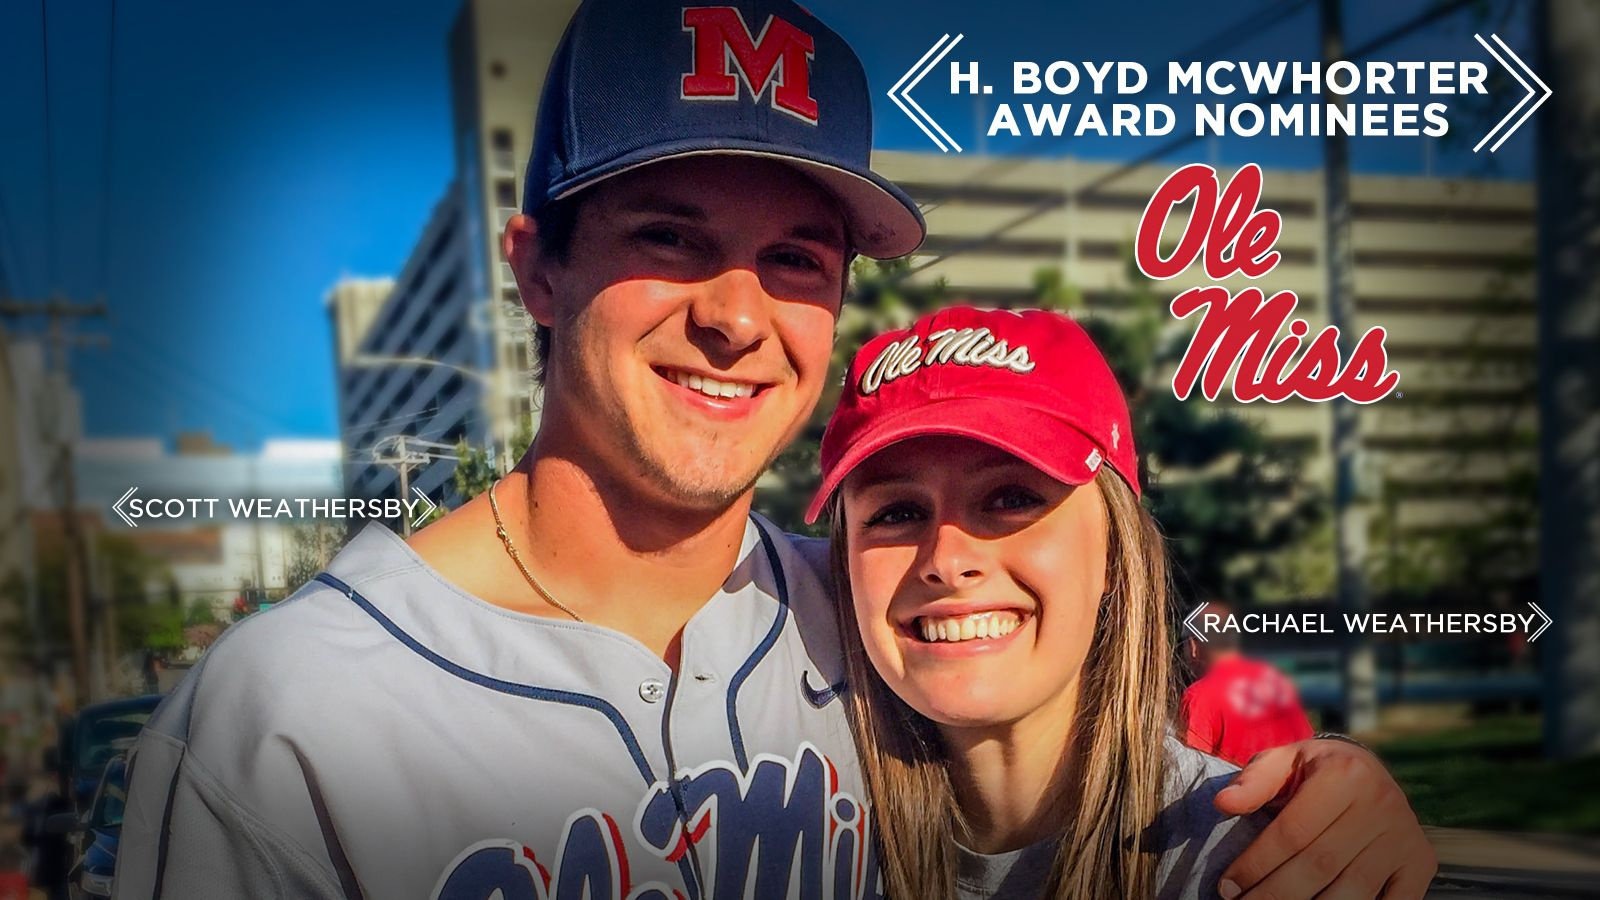 Ole Miss McWhorter Award Nominees